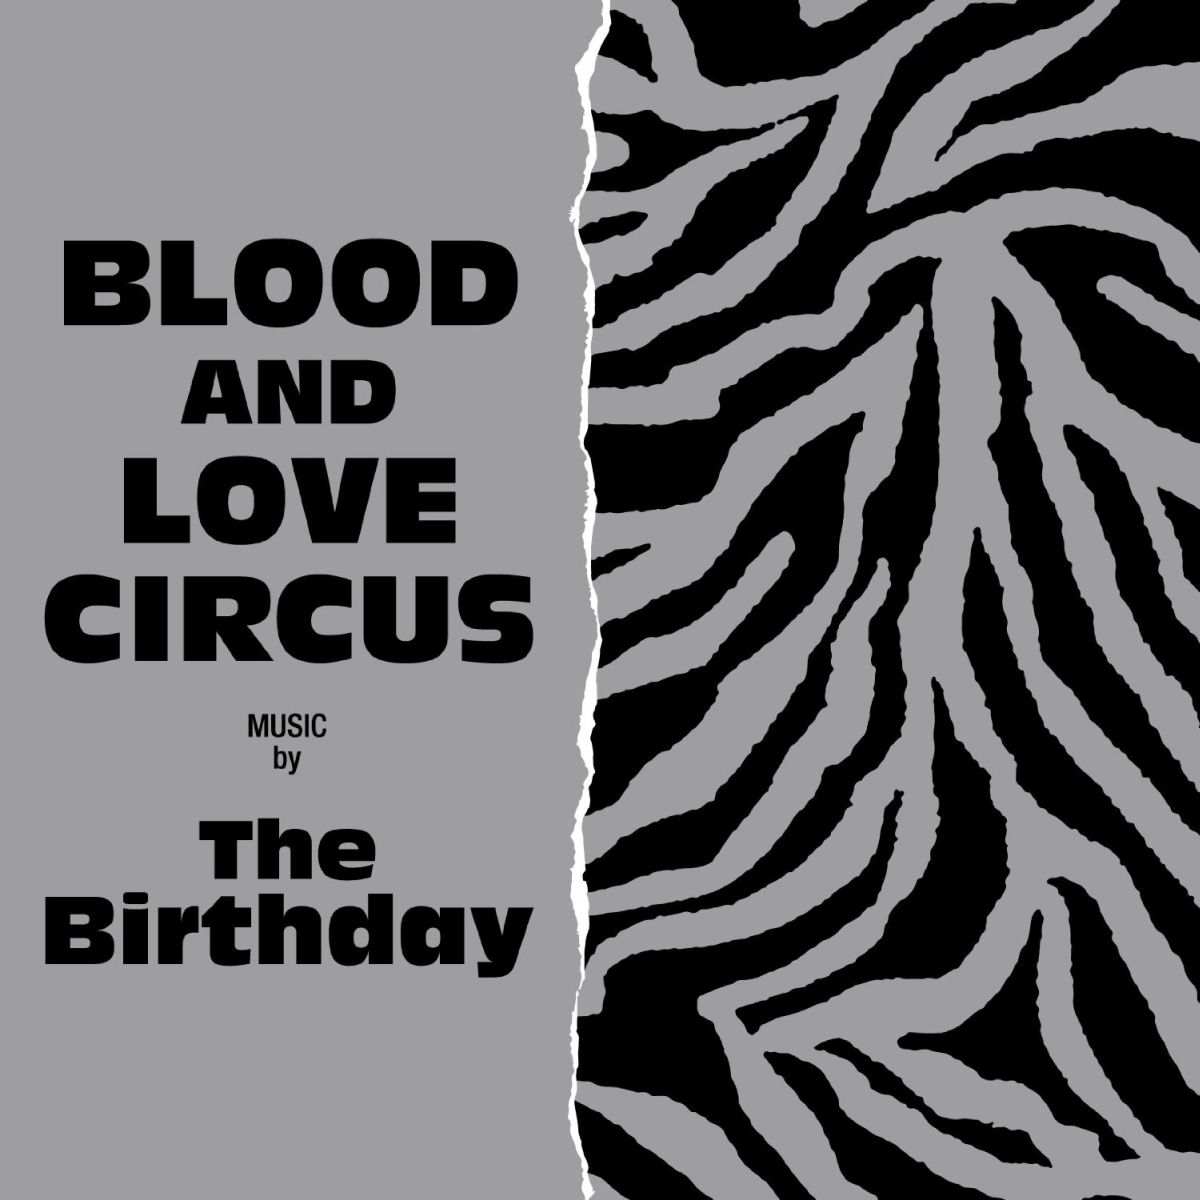 BLOOD AND LOVE CIRCUS (初回限定盤 CD+DVD) [ The Birthday ]